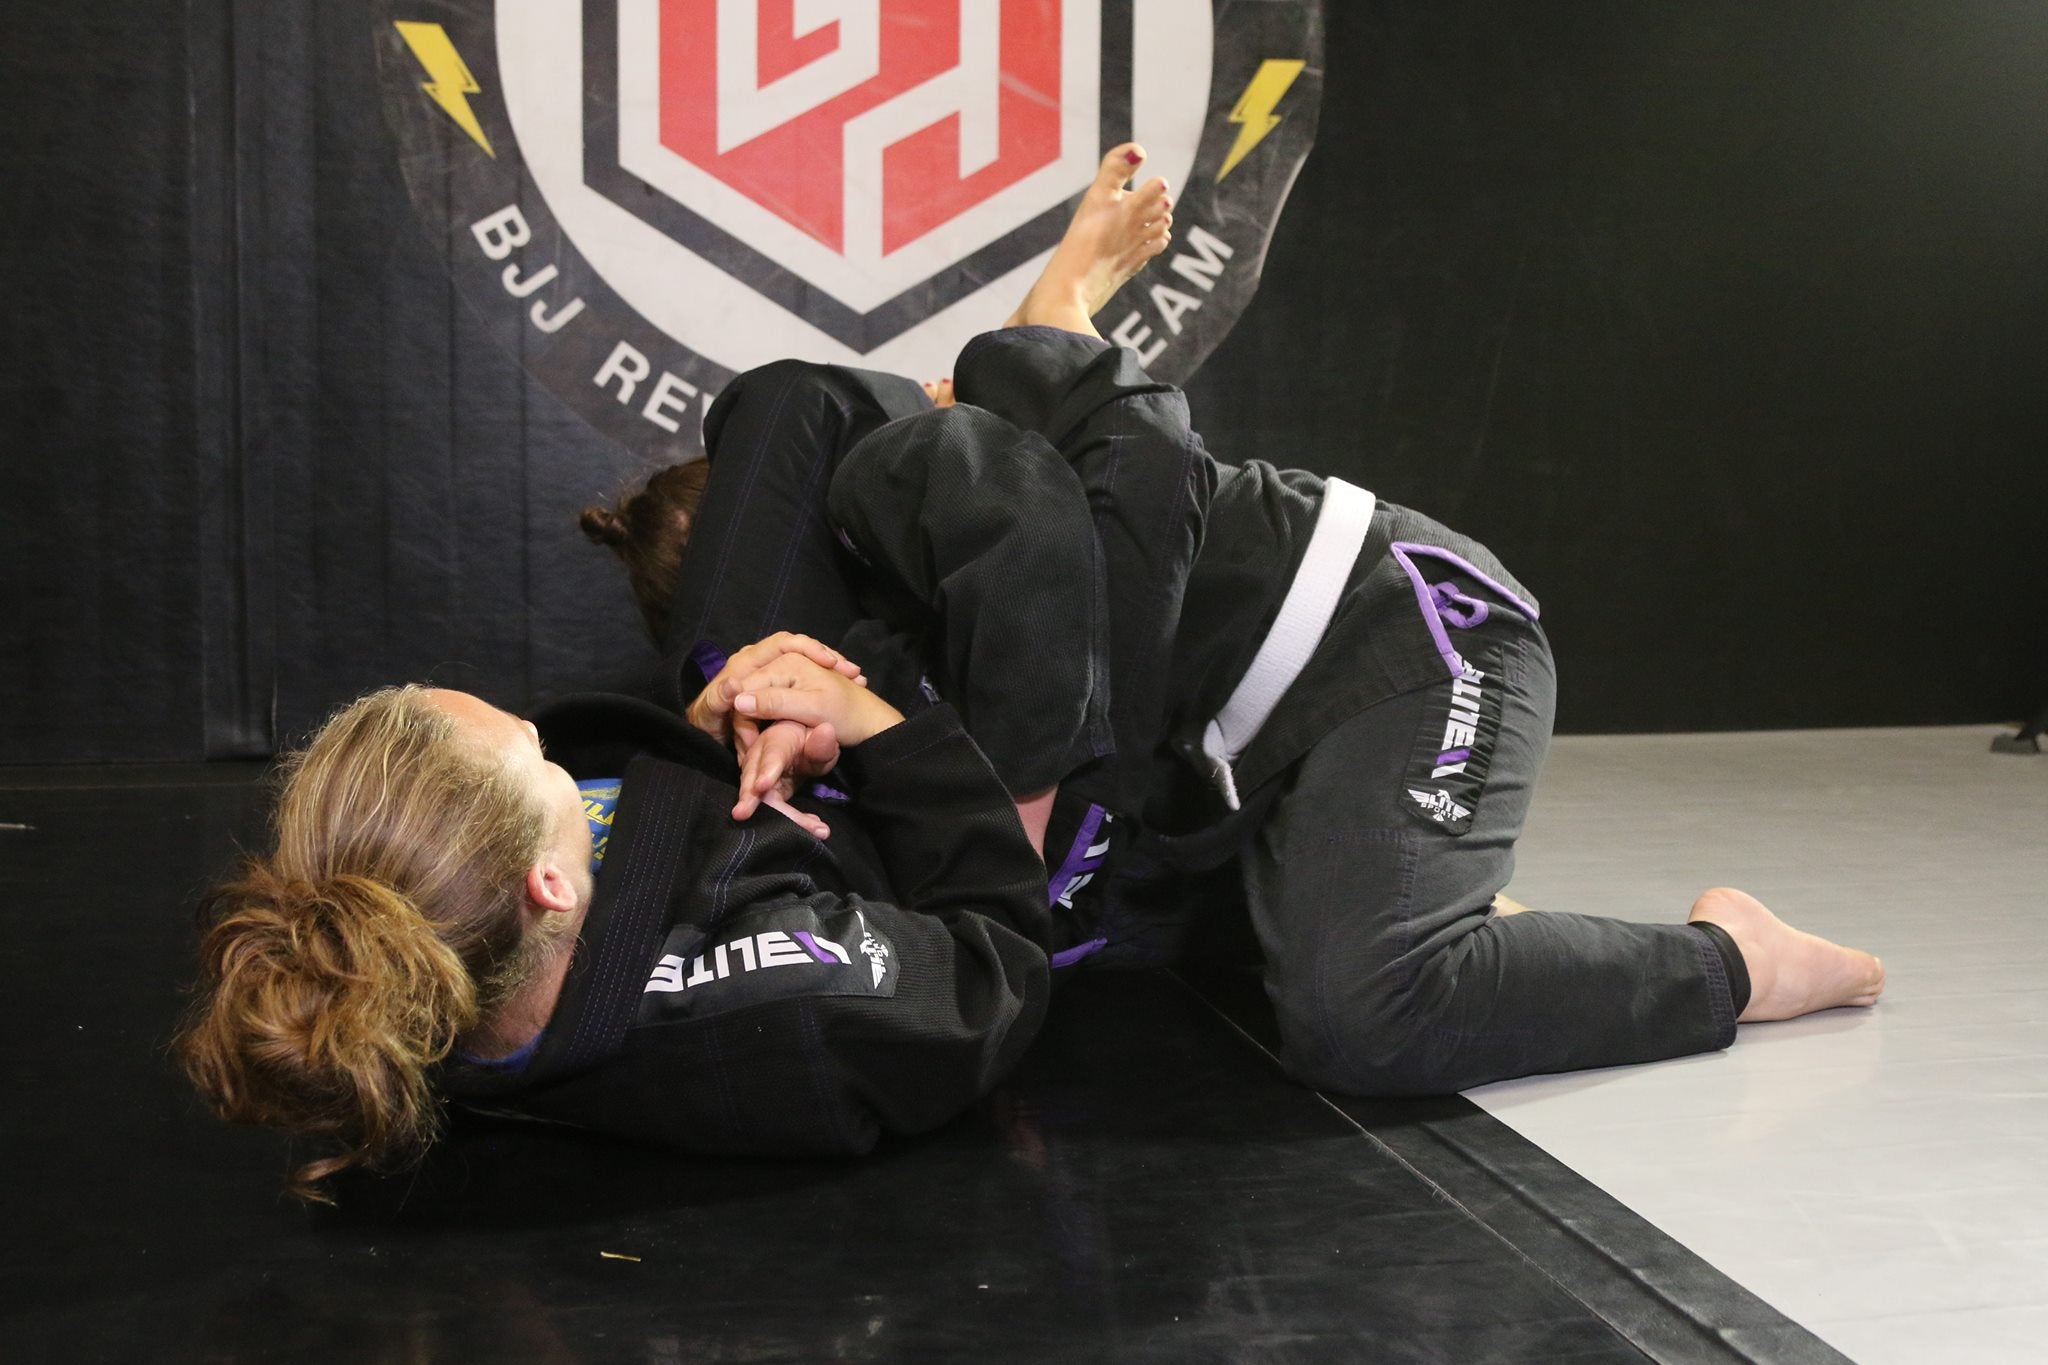 Elite Sports Team Elite Bjj Fighter Aimee Olds   Image3